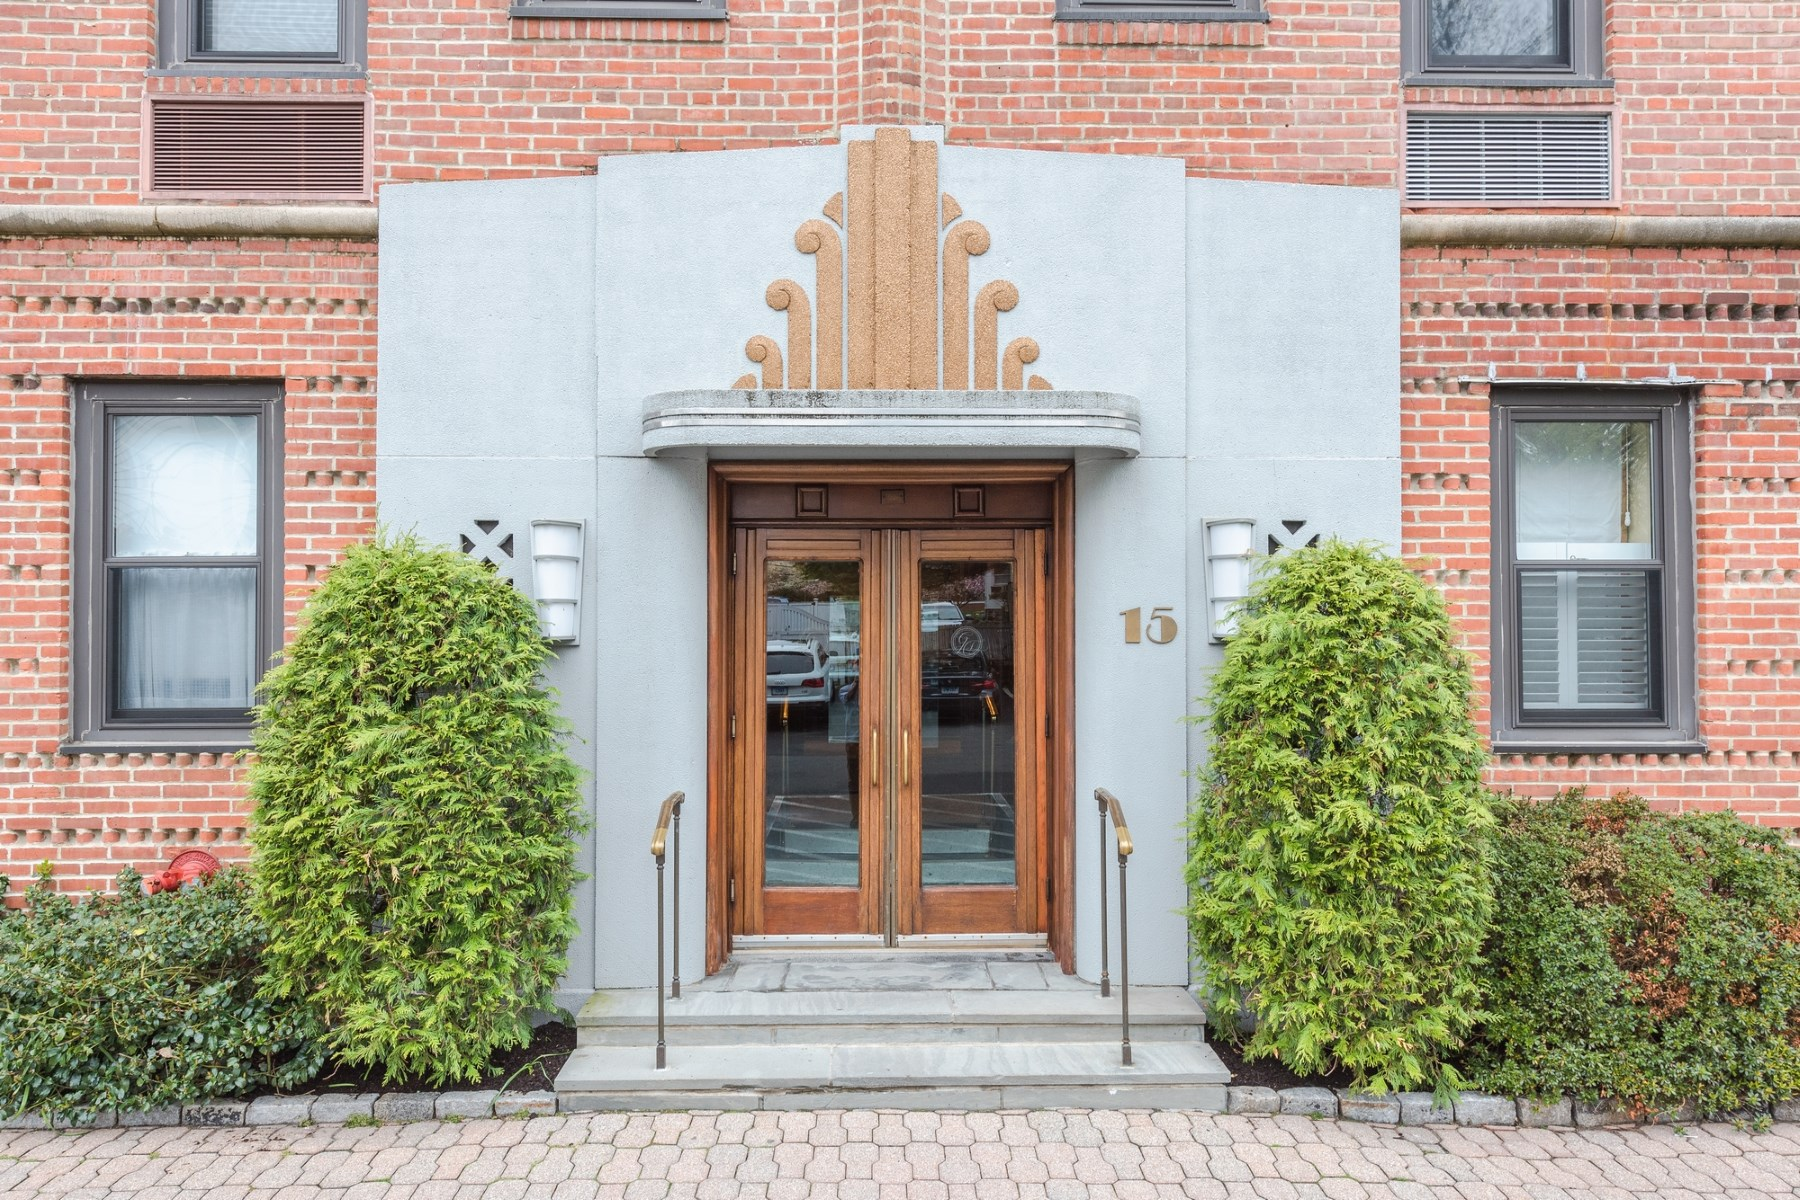 Condominium for Sale at 15 Lafayette Court Unit 1d, Greenwich CT 15 Lafayette Court, Unit 1d Central Greenwich, Greenwich, Connecticut, 06830 United States